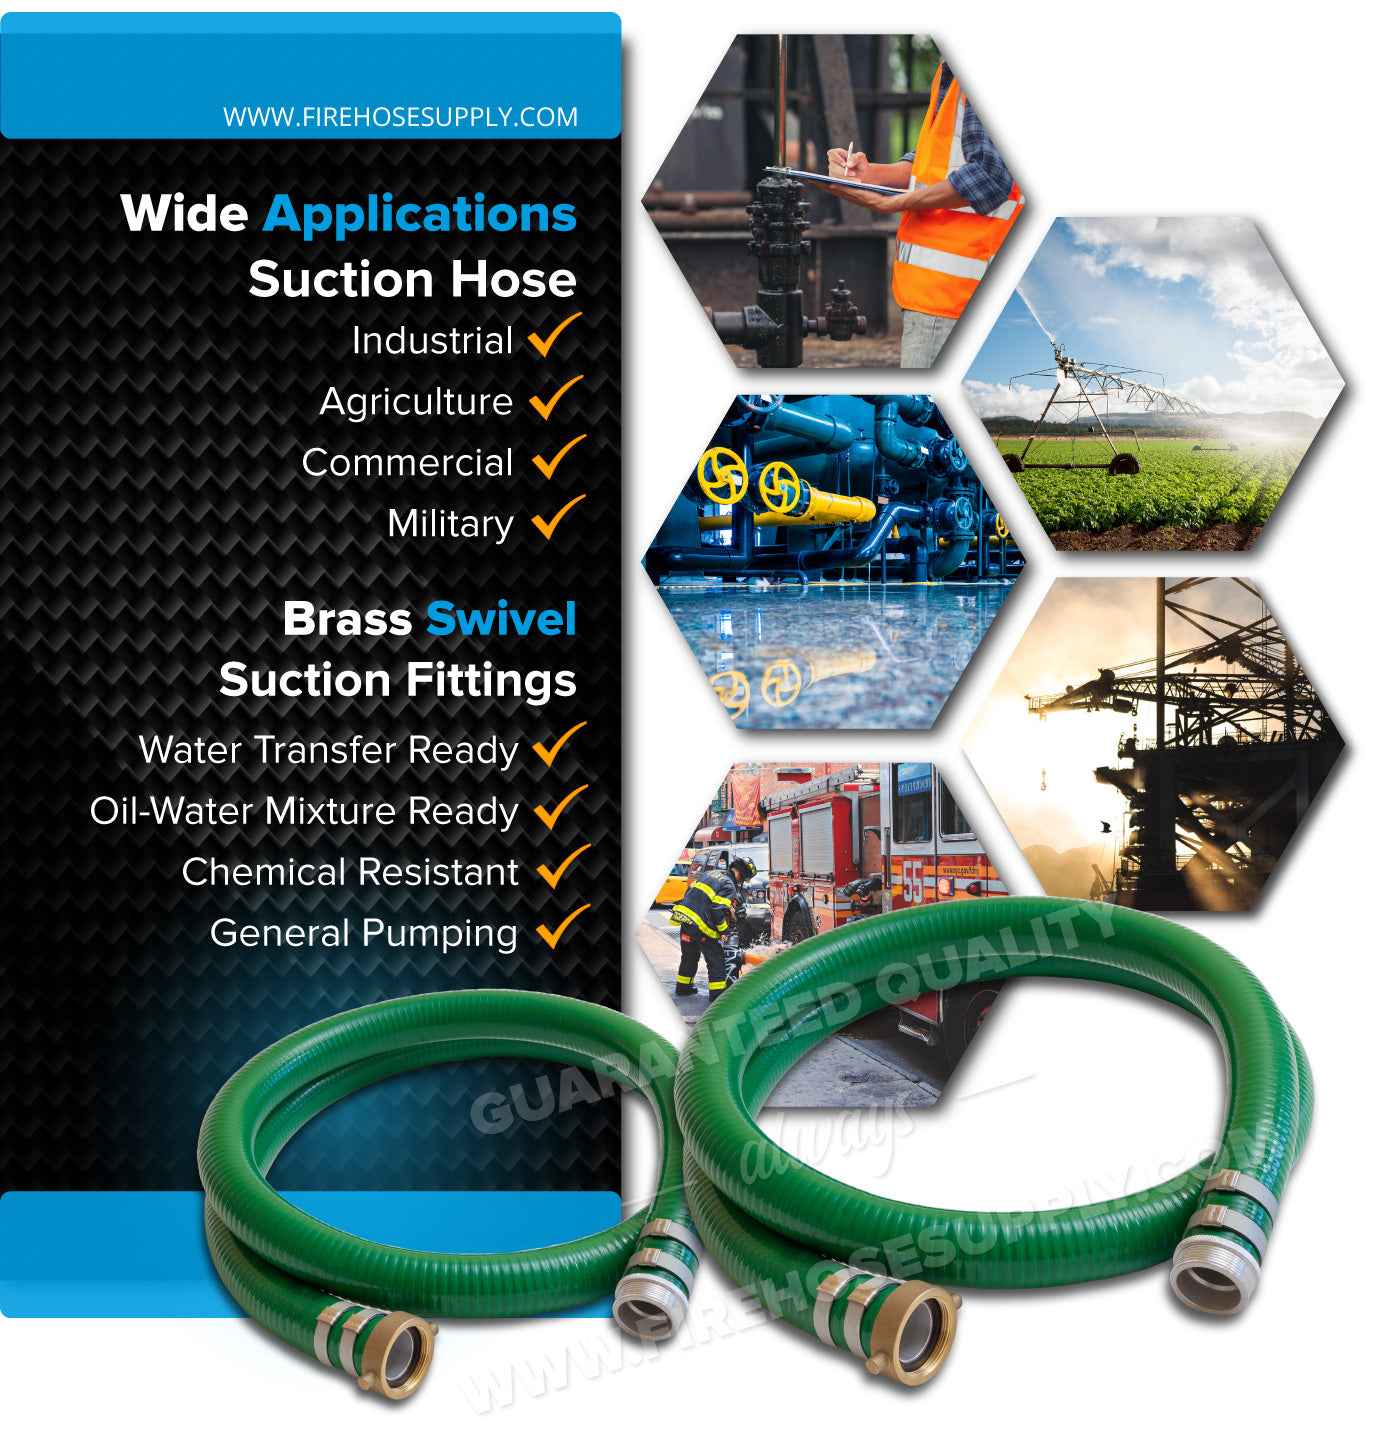 1 Inch Threaded Female x Male Green Suction Hose Wide Applications